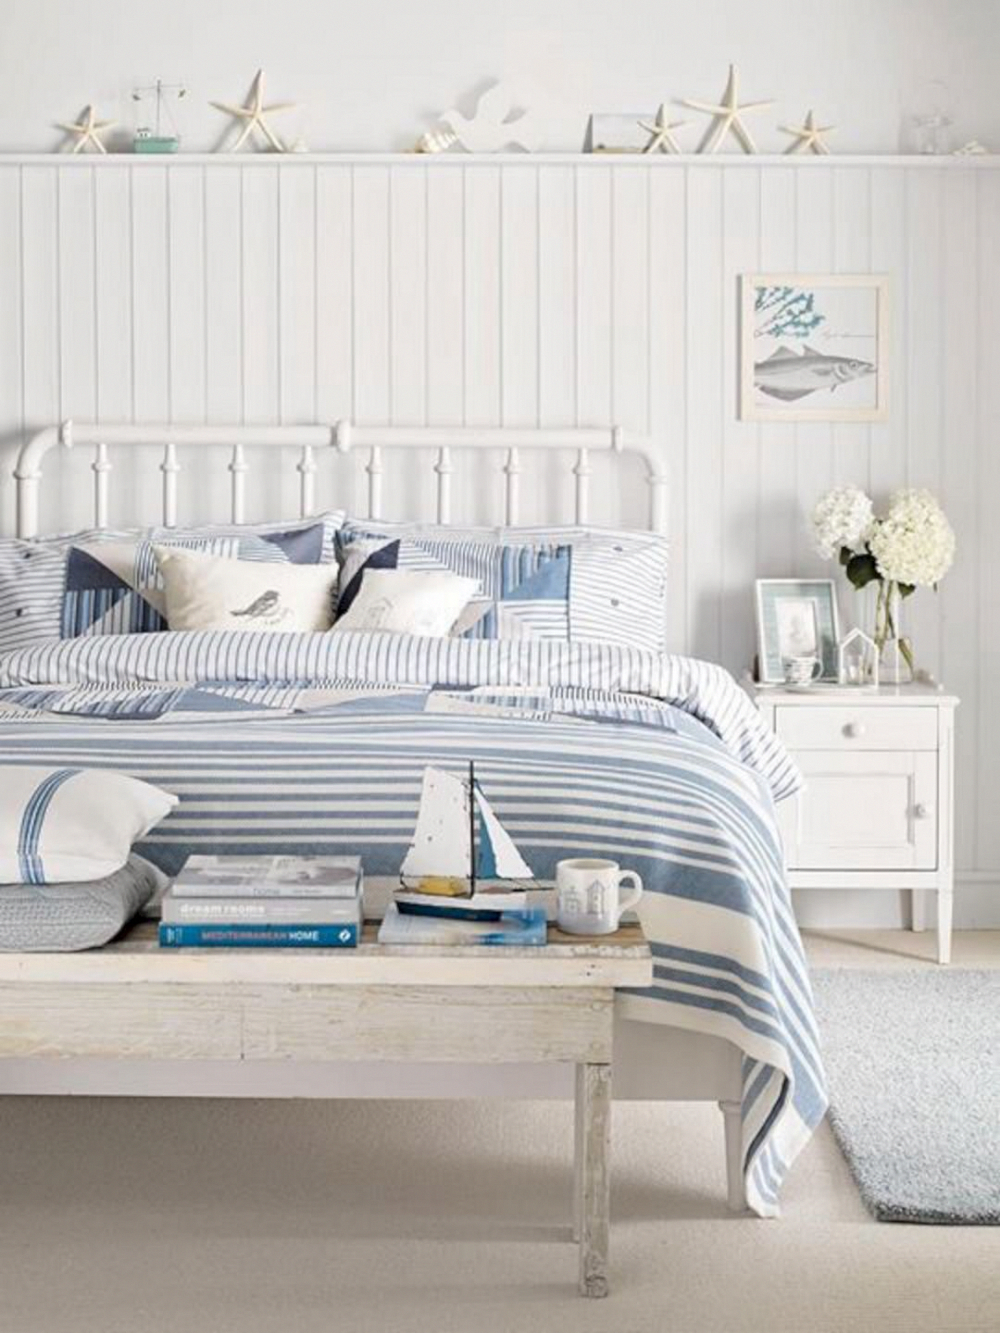 Astounding Options To Check Out Beachcottagebedding Coastal Bedroom Furniture Coastal Bedroom Decorating Beach Themed Bedroom